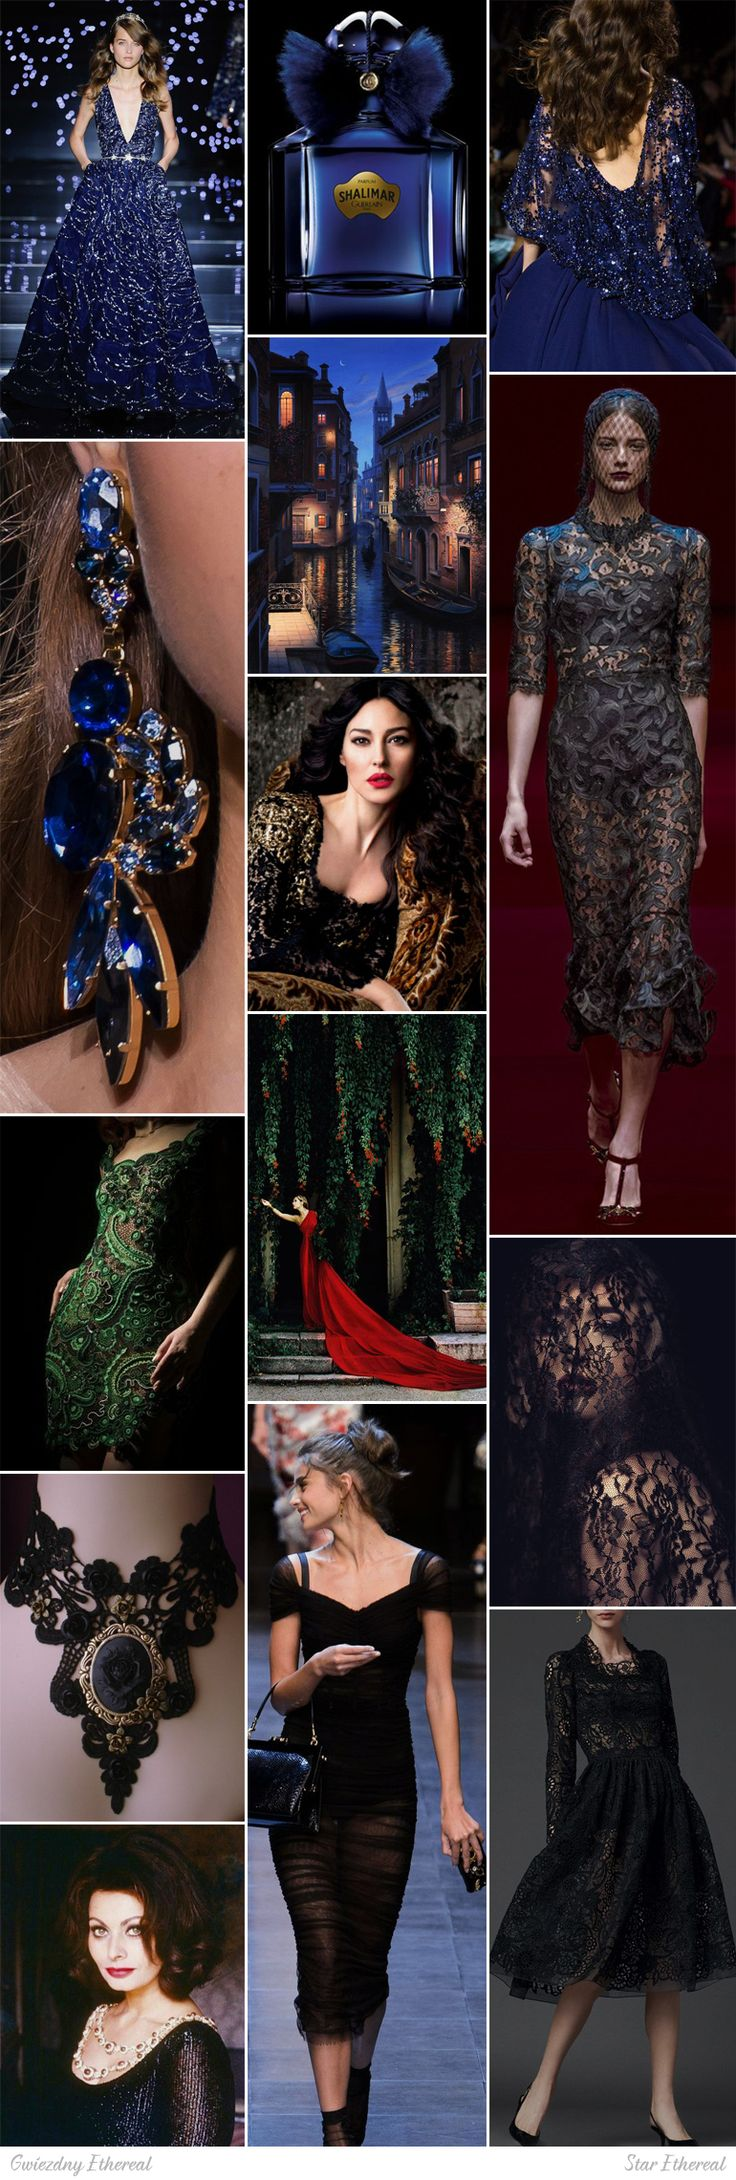 Star Ethereal moodboard. One of 18 beauty types created by GretaKredka. Subtle lace, black, velour, light velvet, chiffon, rich jewelry with gems, wavy hair. Color essence: Deep Winter.